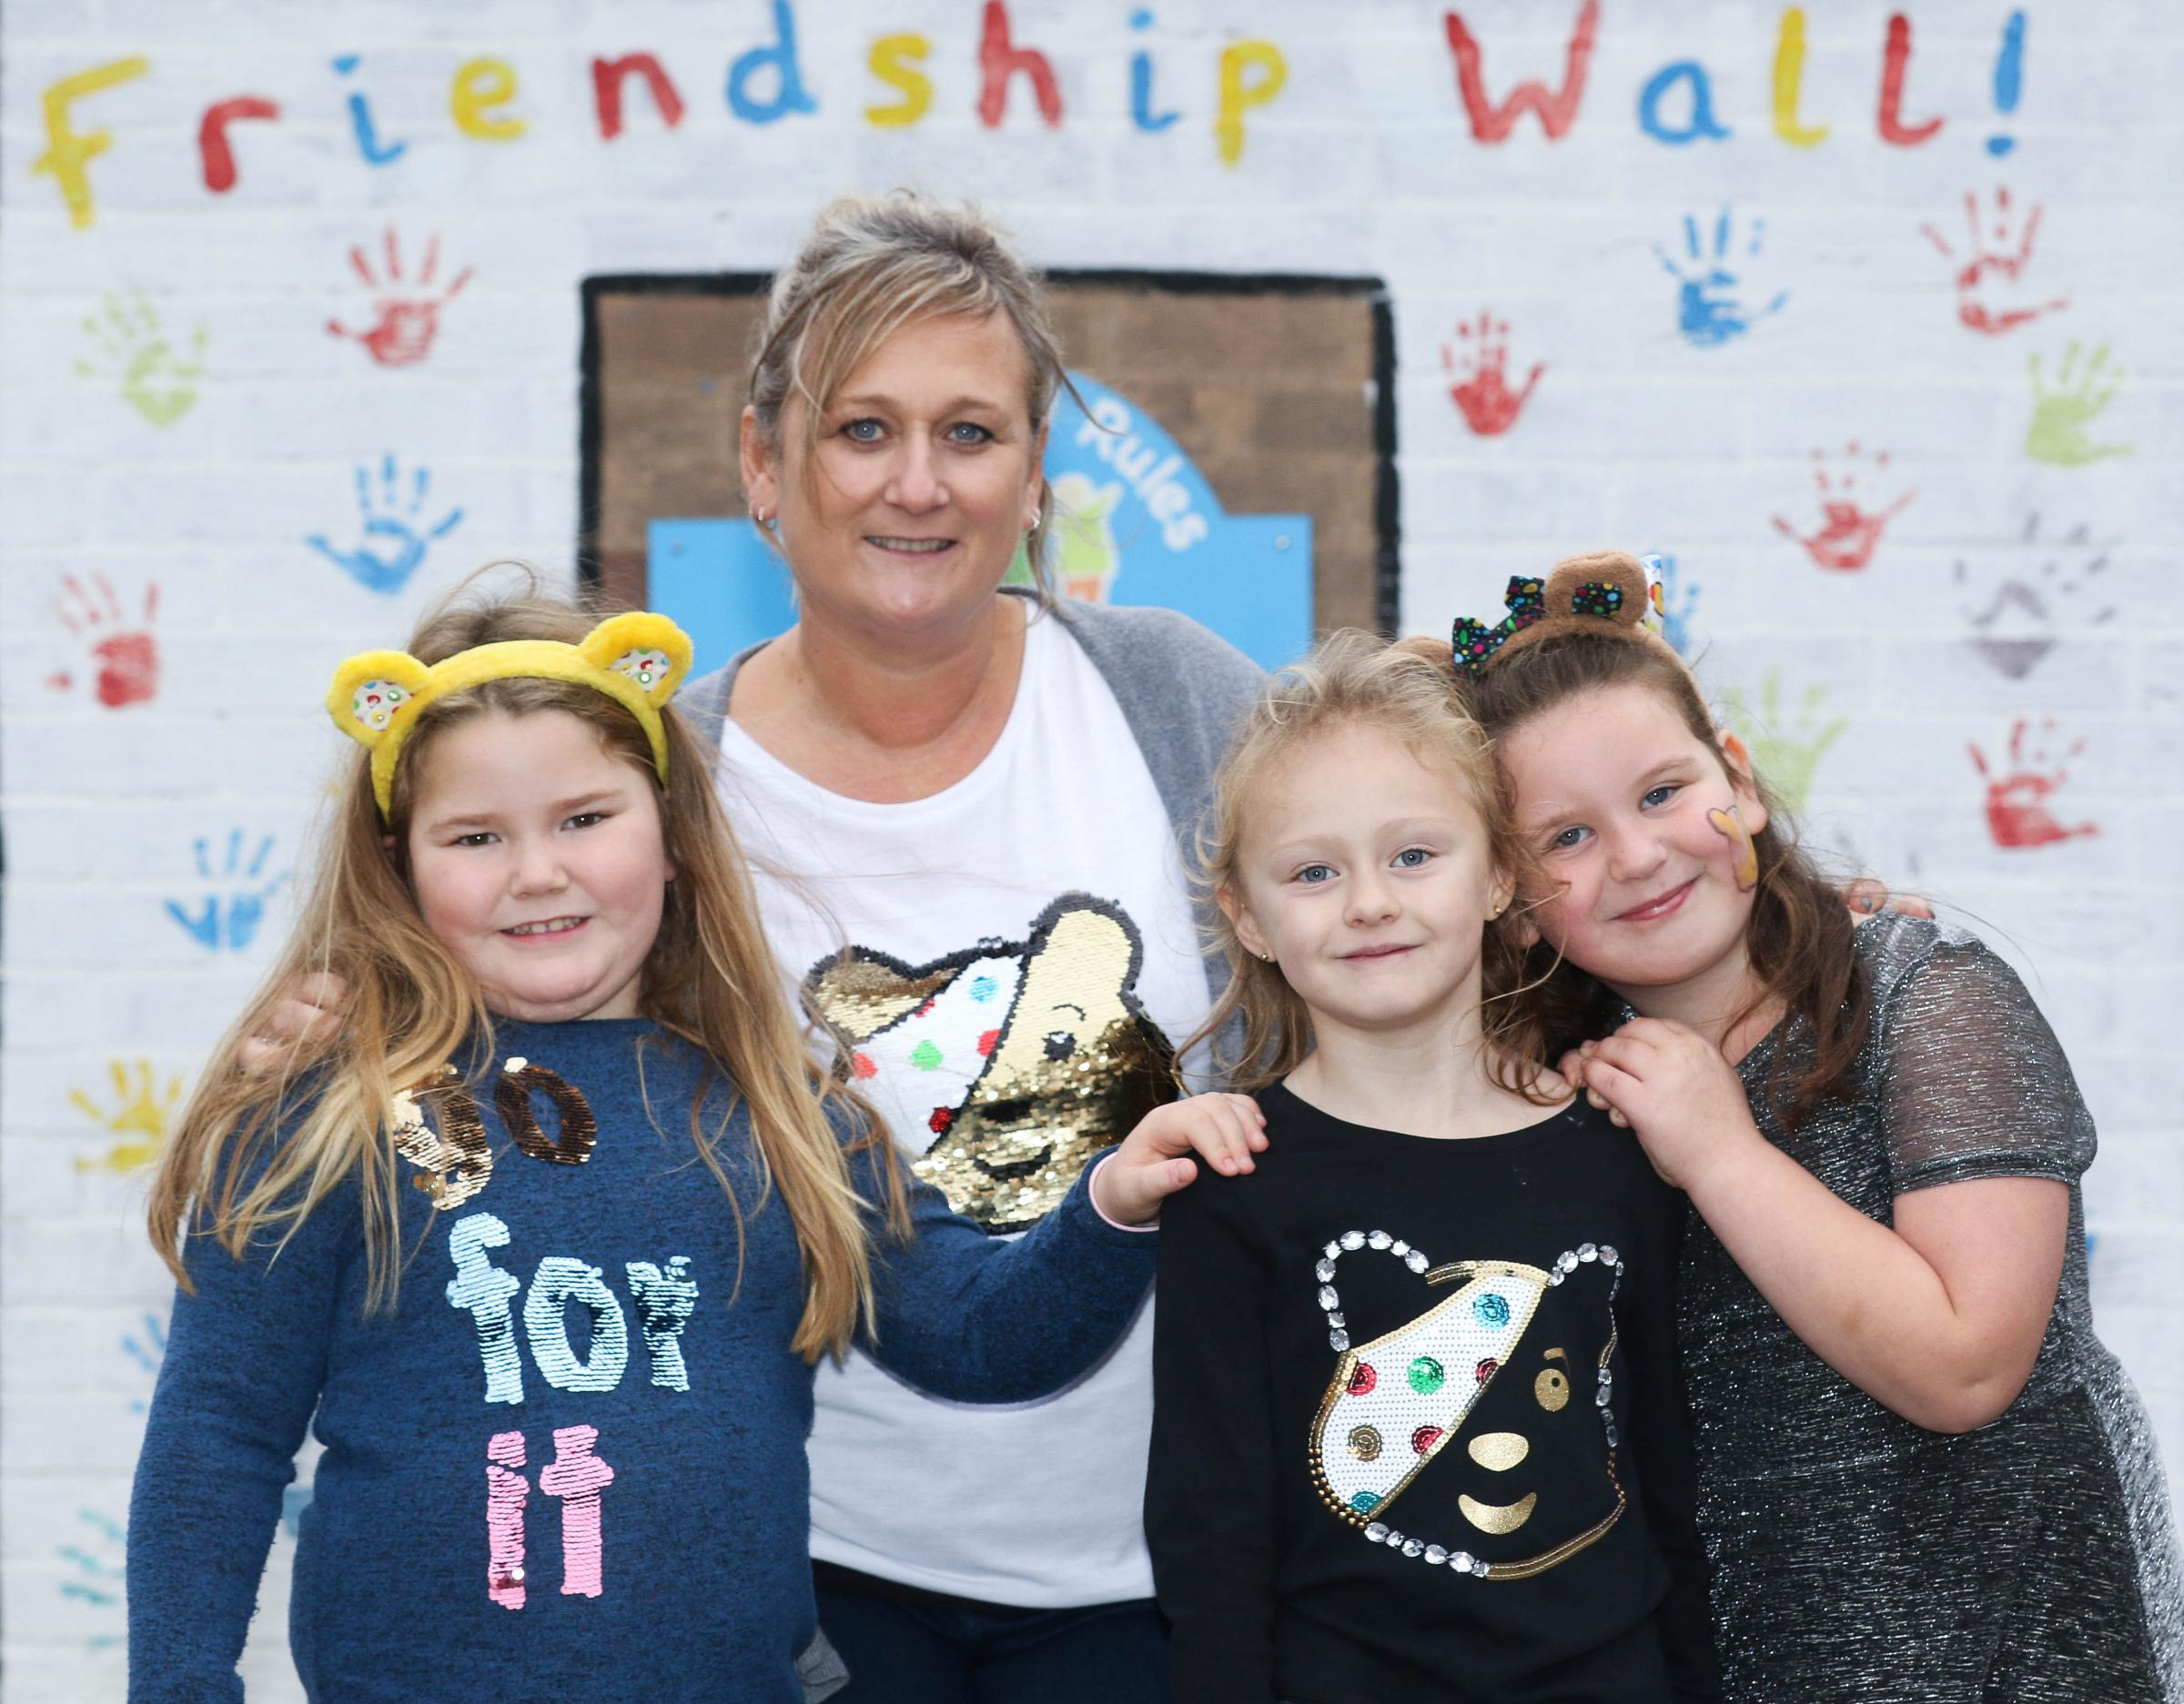 Churchstoke Primary School pupils have been dressing up for the day and raising money for Children in Need Day last Friday 16th November 2018..pictured from left to right, Brooke Pritchard (6) Sue Richards, Libby Atkins (7) and Olivia Williams (6).Picture